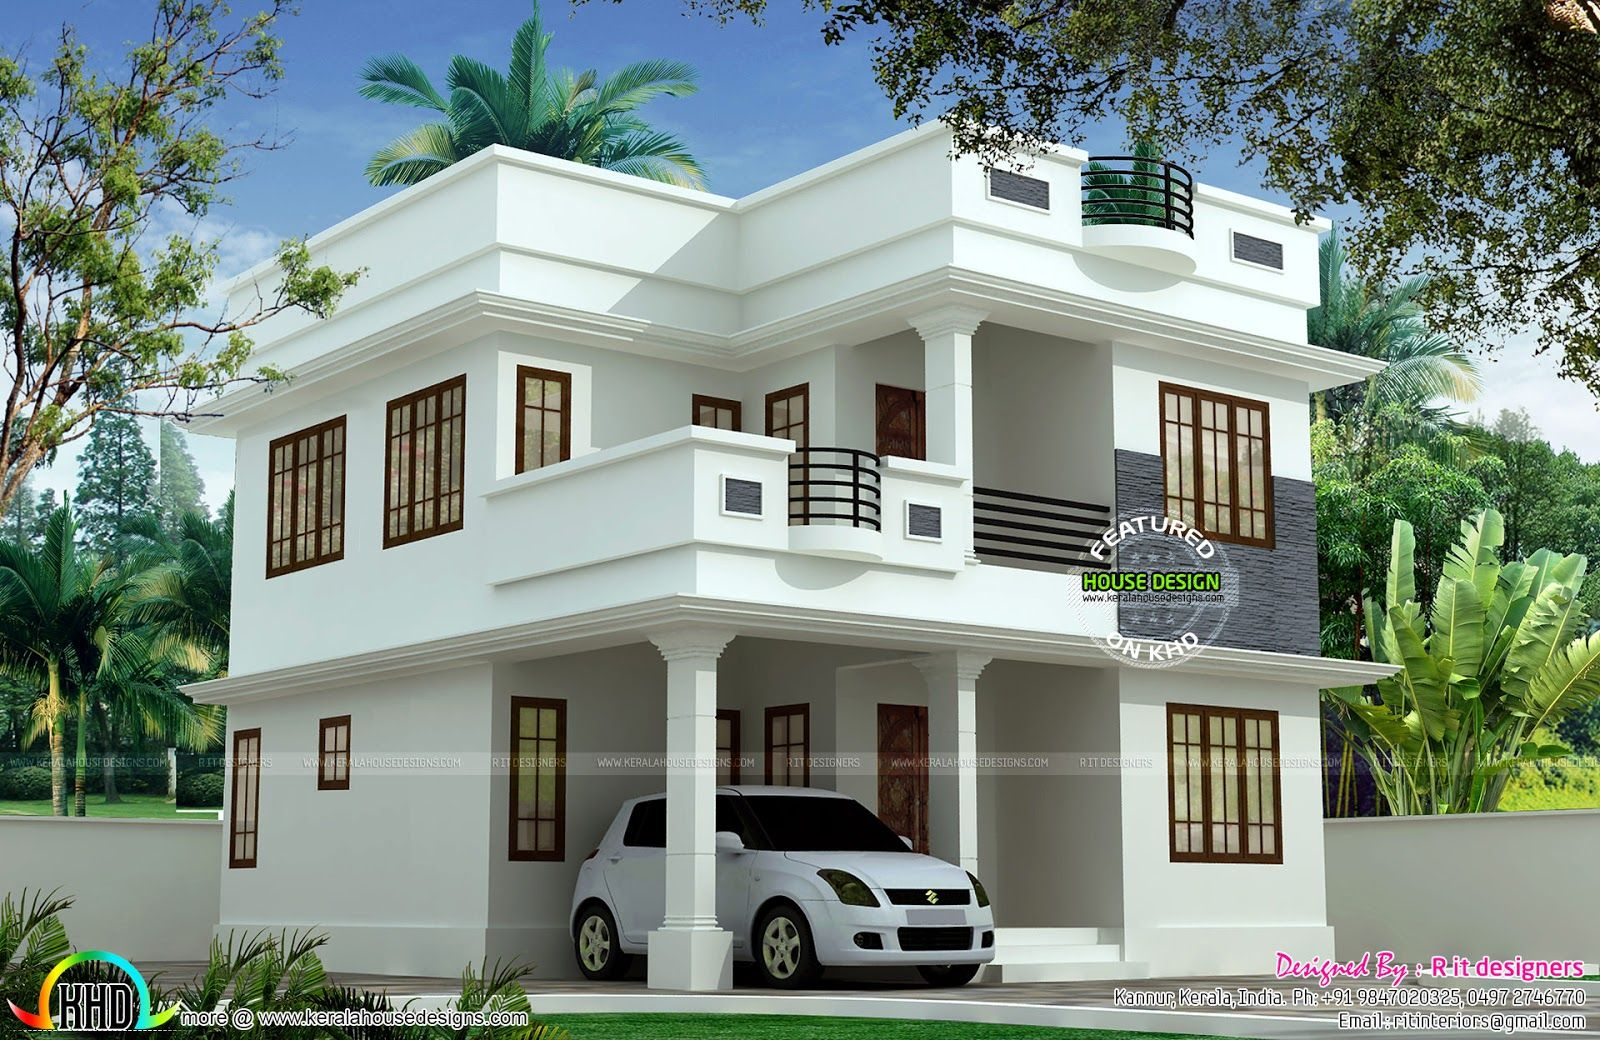 7d1ca0fd8e6d6580e37316d32b7ddf01 - View Modern Small House Design Philippines 2019  Background